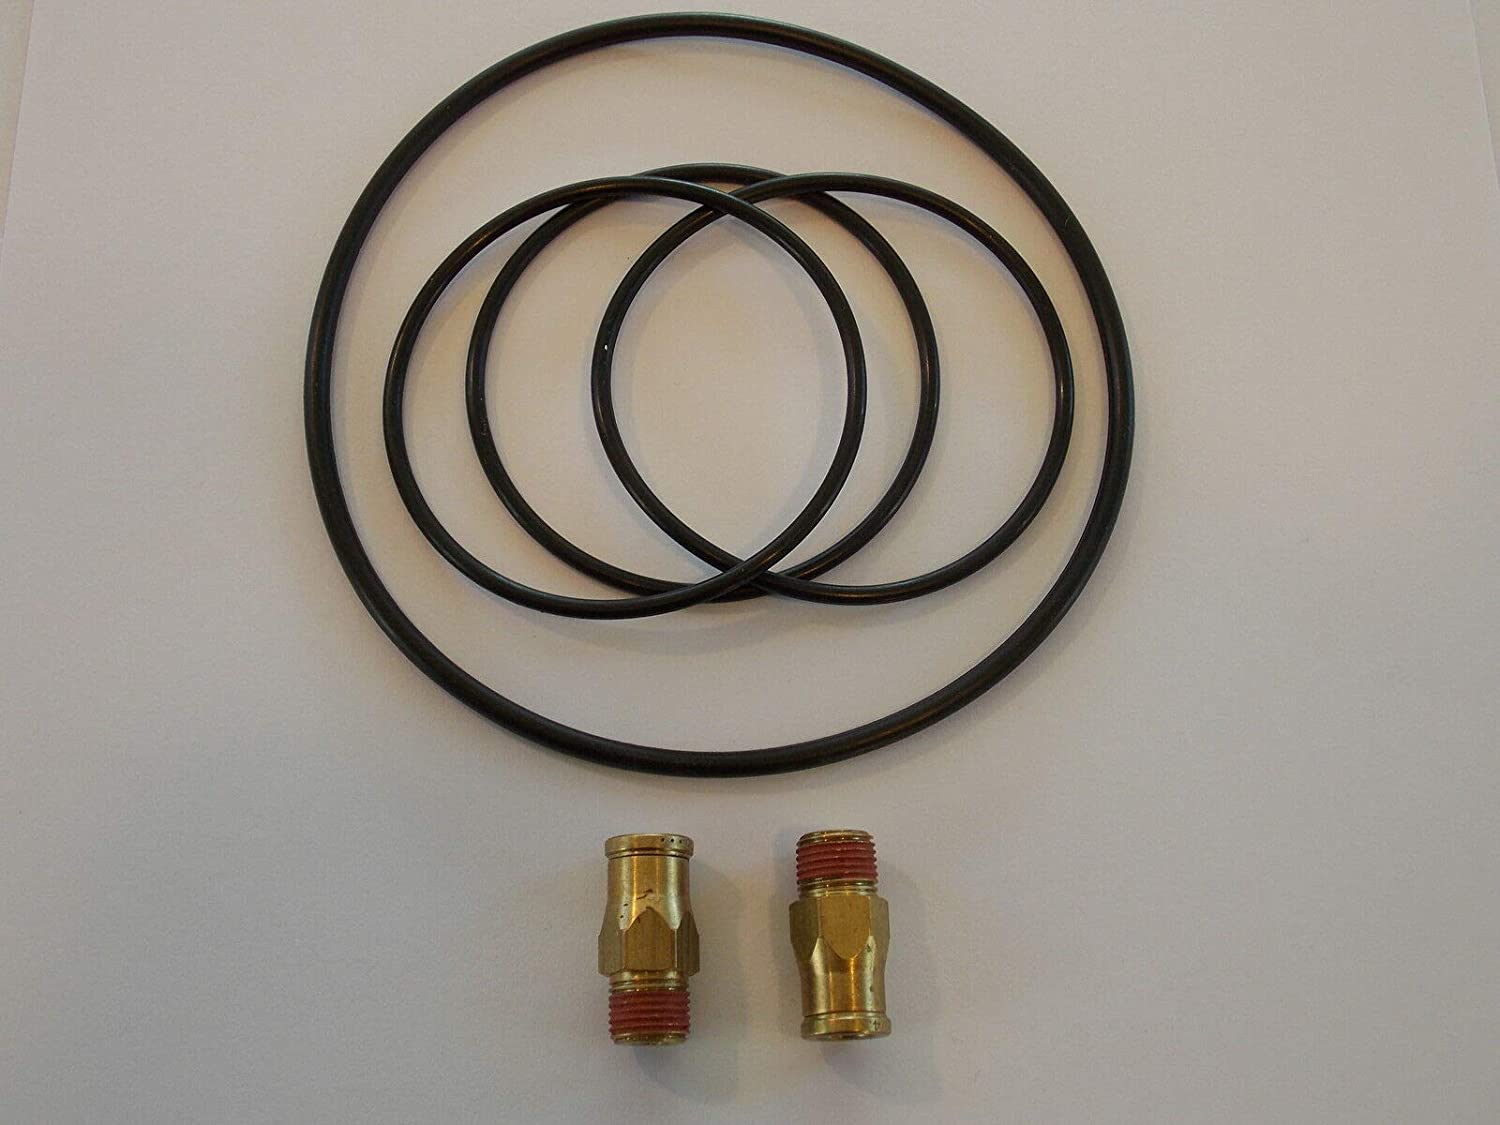 Online Auto Supply Replacement O-Ring and Fittings for Coats Tire Changer Rotary Coupler Coupling